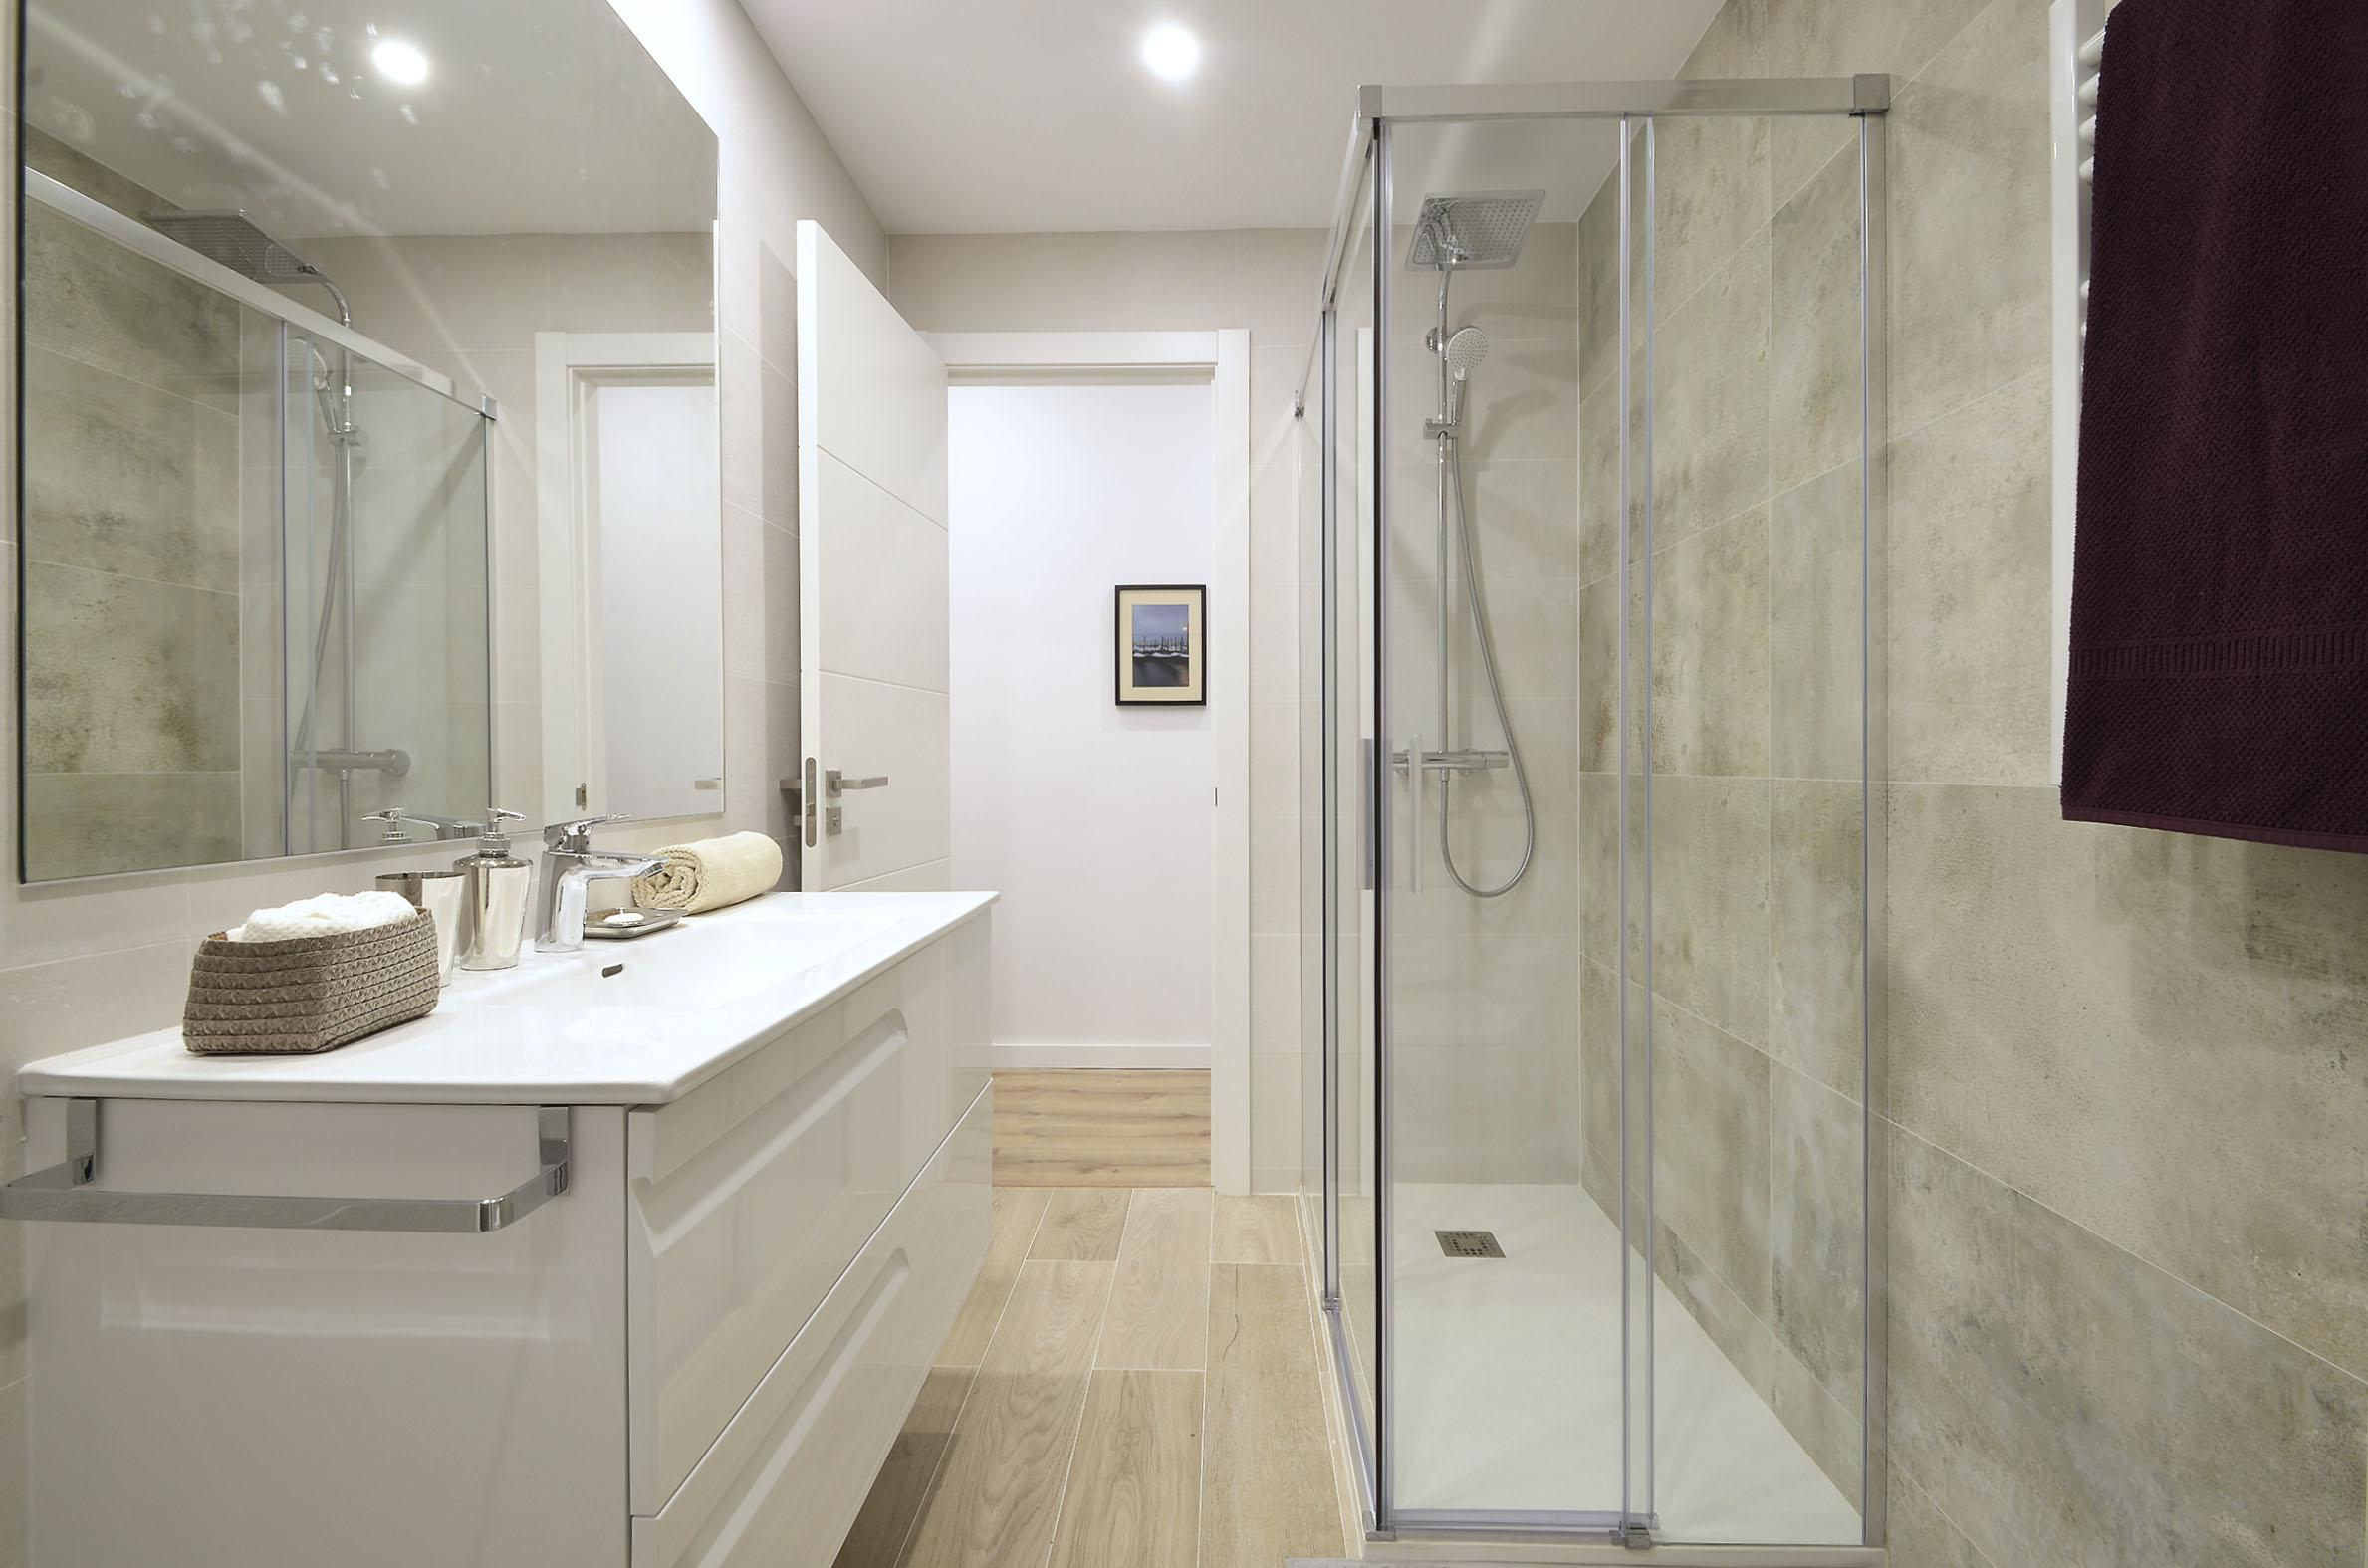 245687 Flat for sale in Eixample, Fort Pienc 3